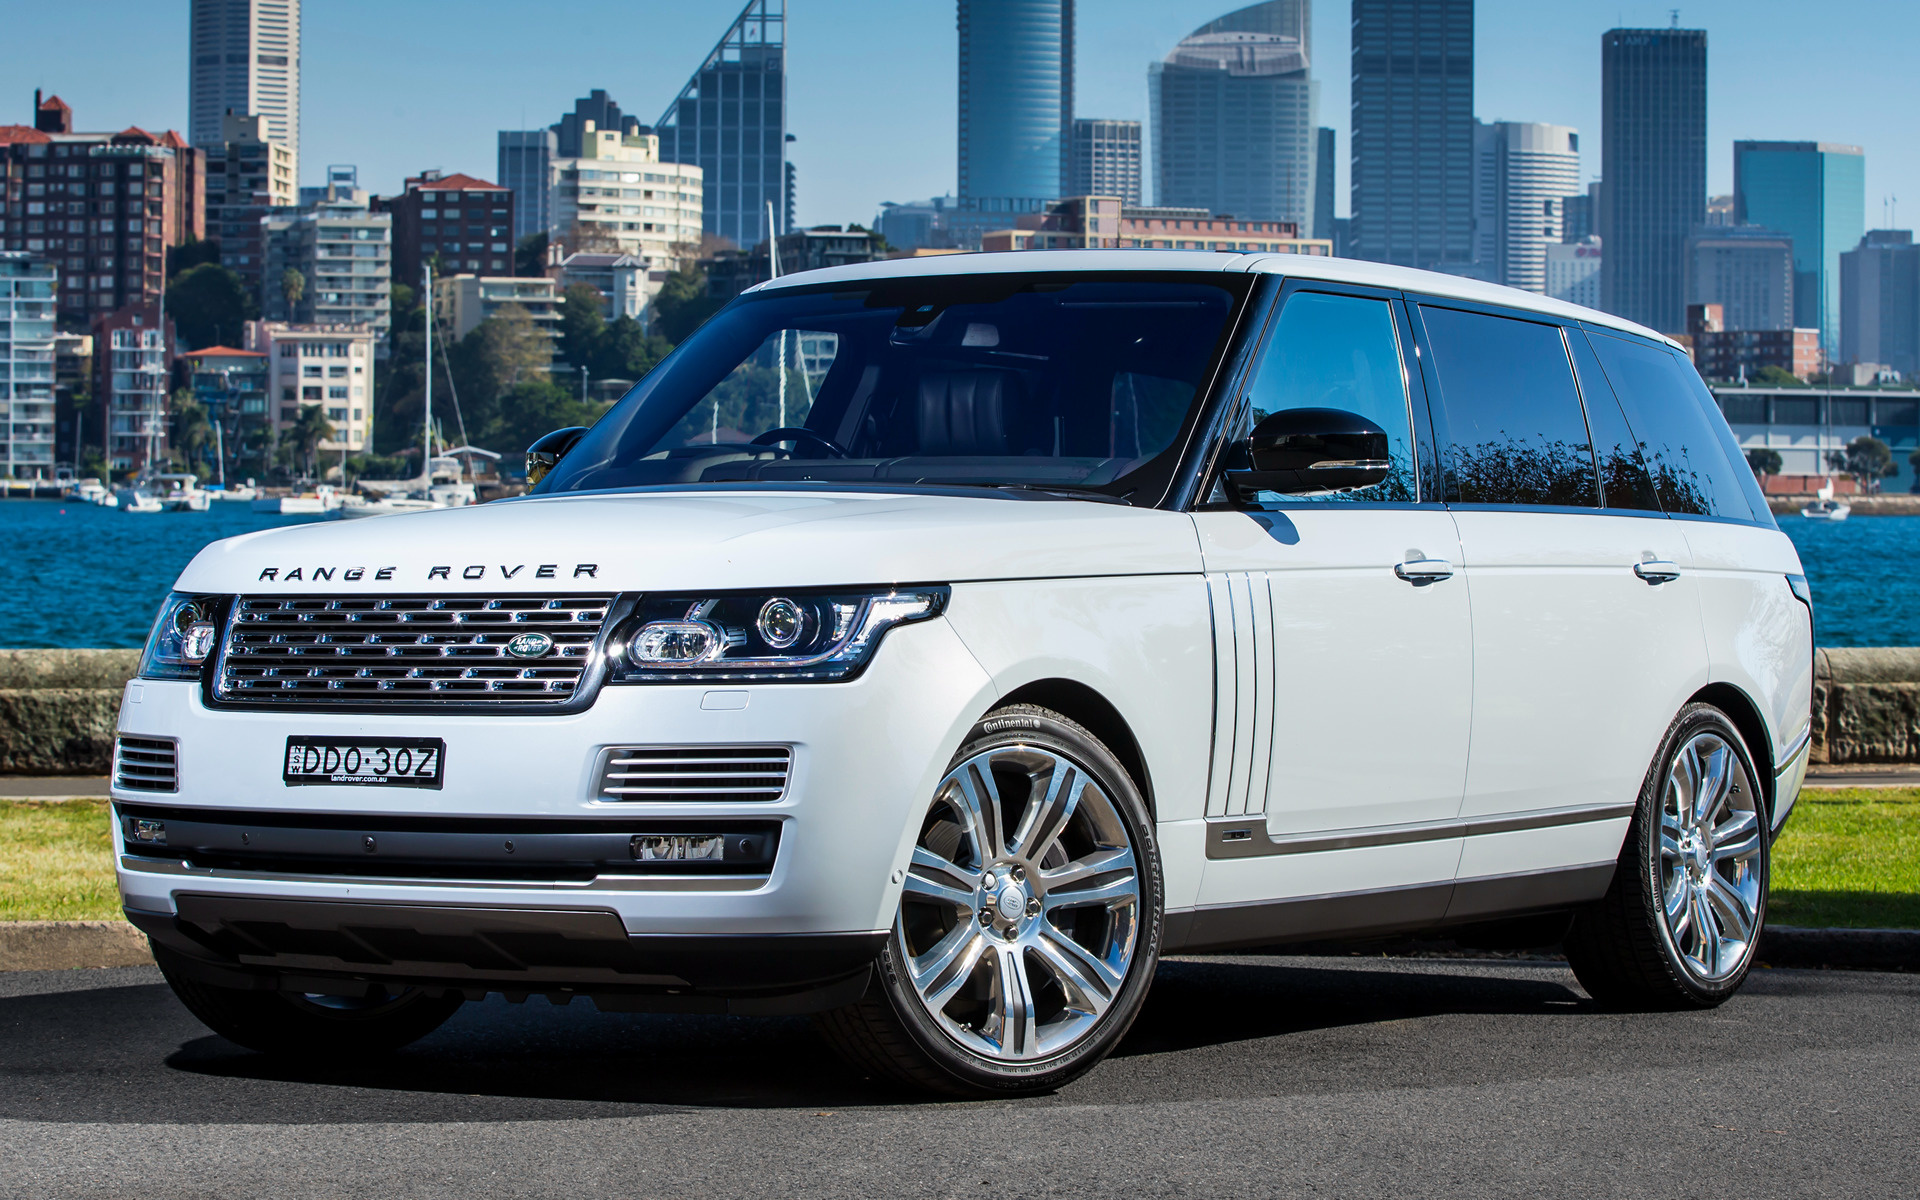 2016 Range Rover SVAutobiography [LWB] (AU) - Wallpapers ...